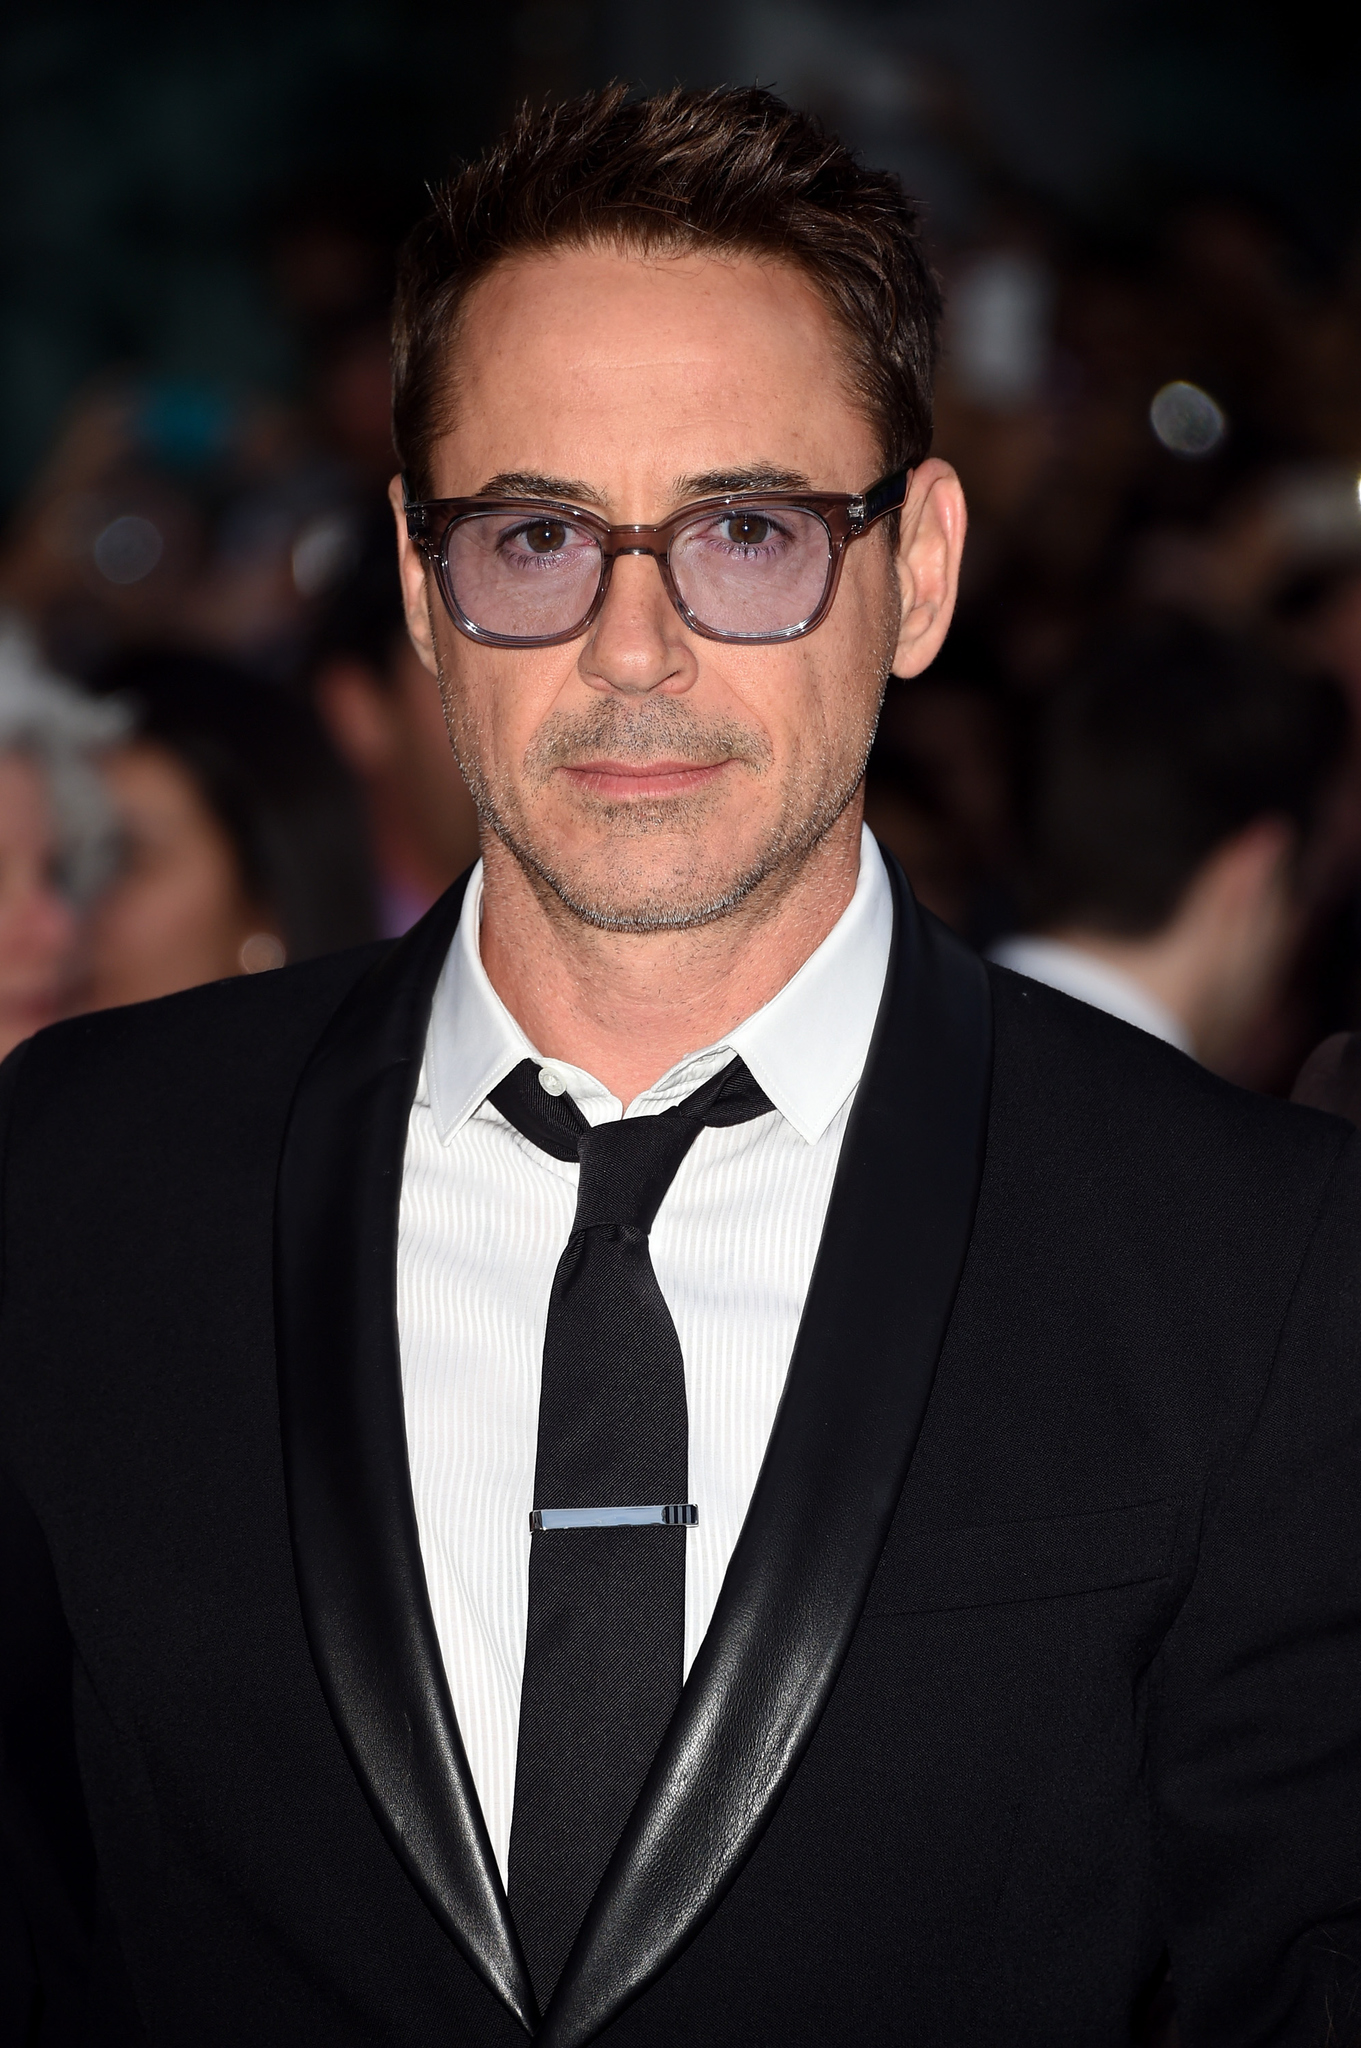 b5b656f9b3a Robert Downey Jr. - IMDb